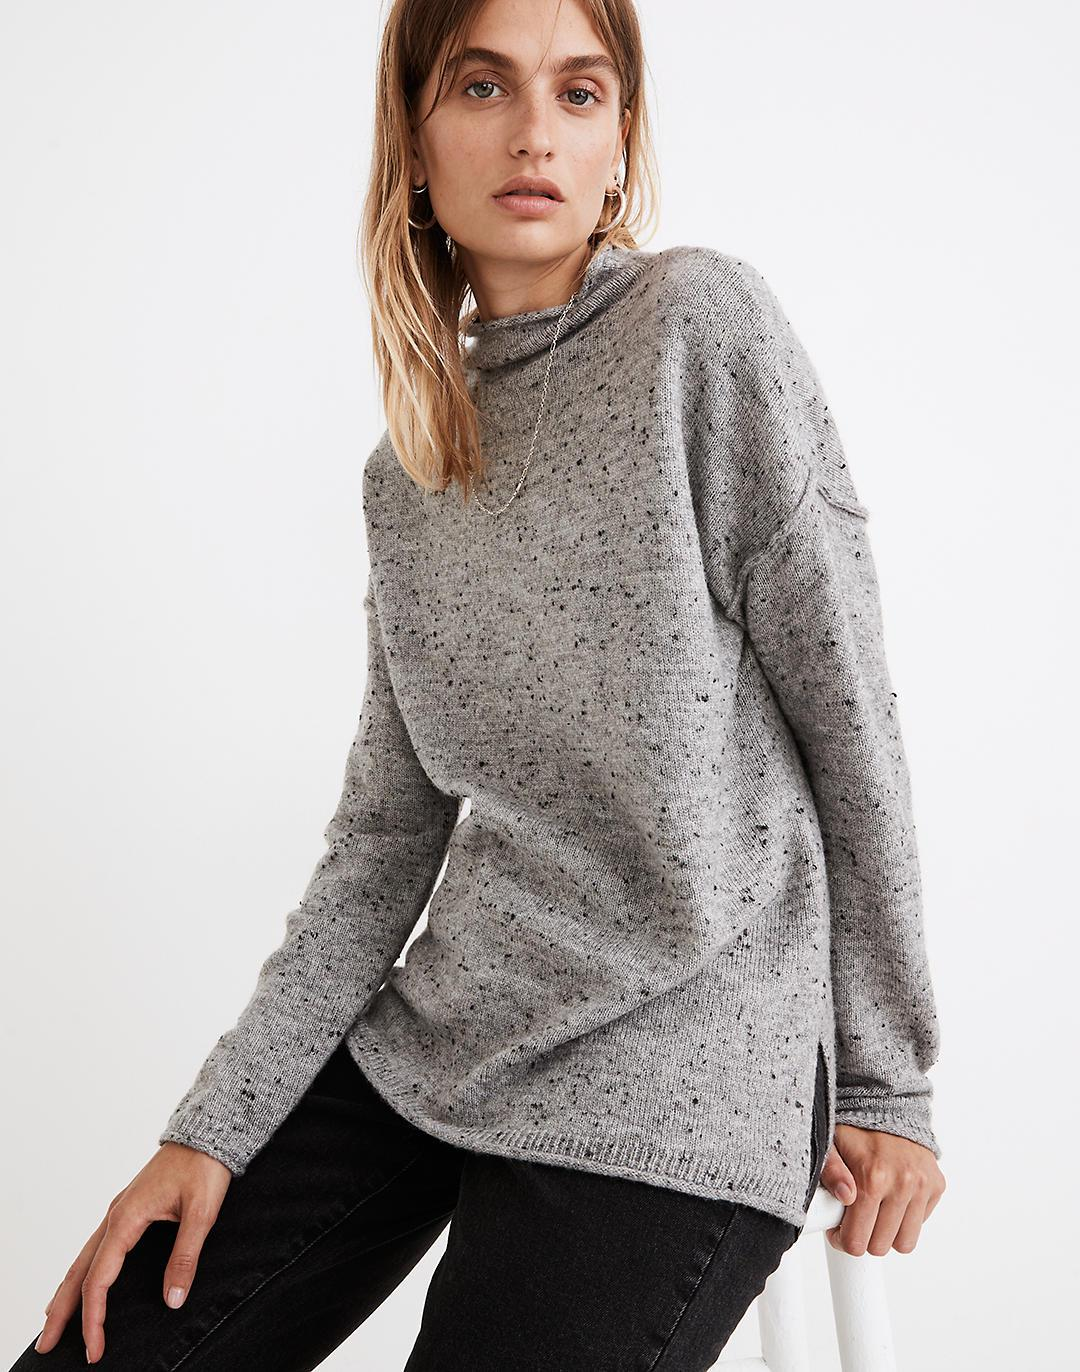 Donegal Whitworth Mockneck Sweater